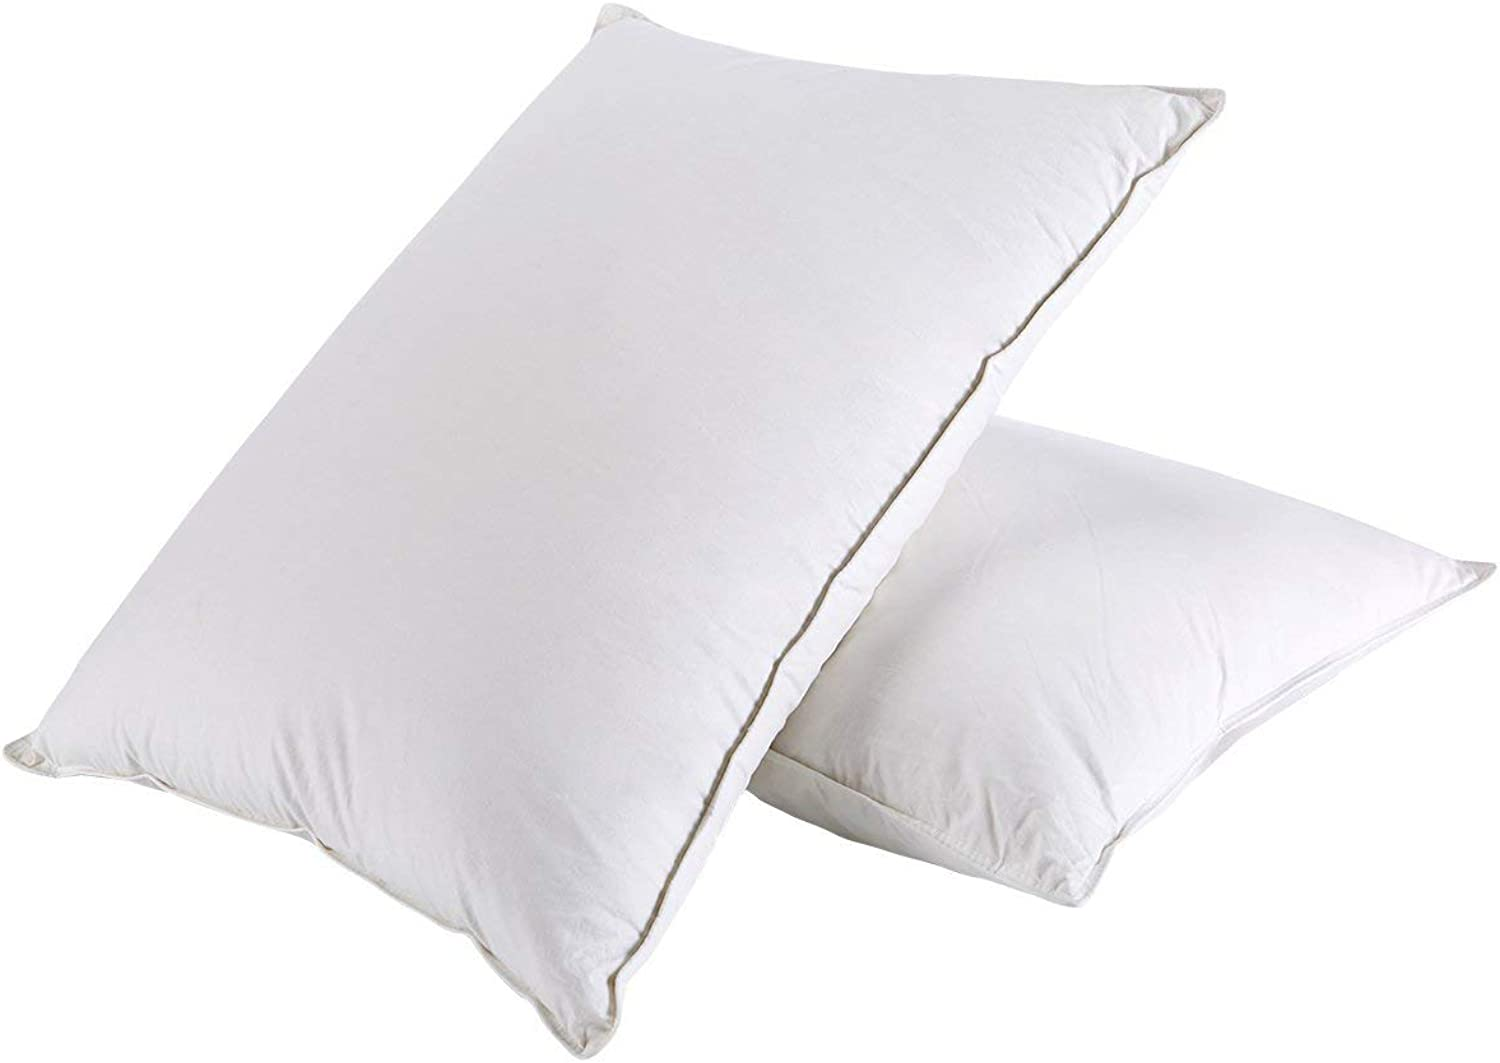 PEACE NEST-Soft White Down and Down Fiber Pillows, Cloud-Like Down Pillows for Sleeping,Side Sleeper,100% Cotton Fabric, King Size, White (2 Pack)